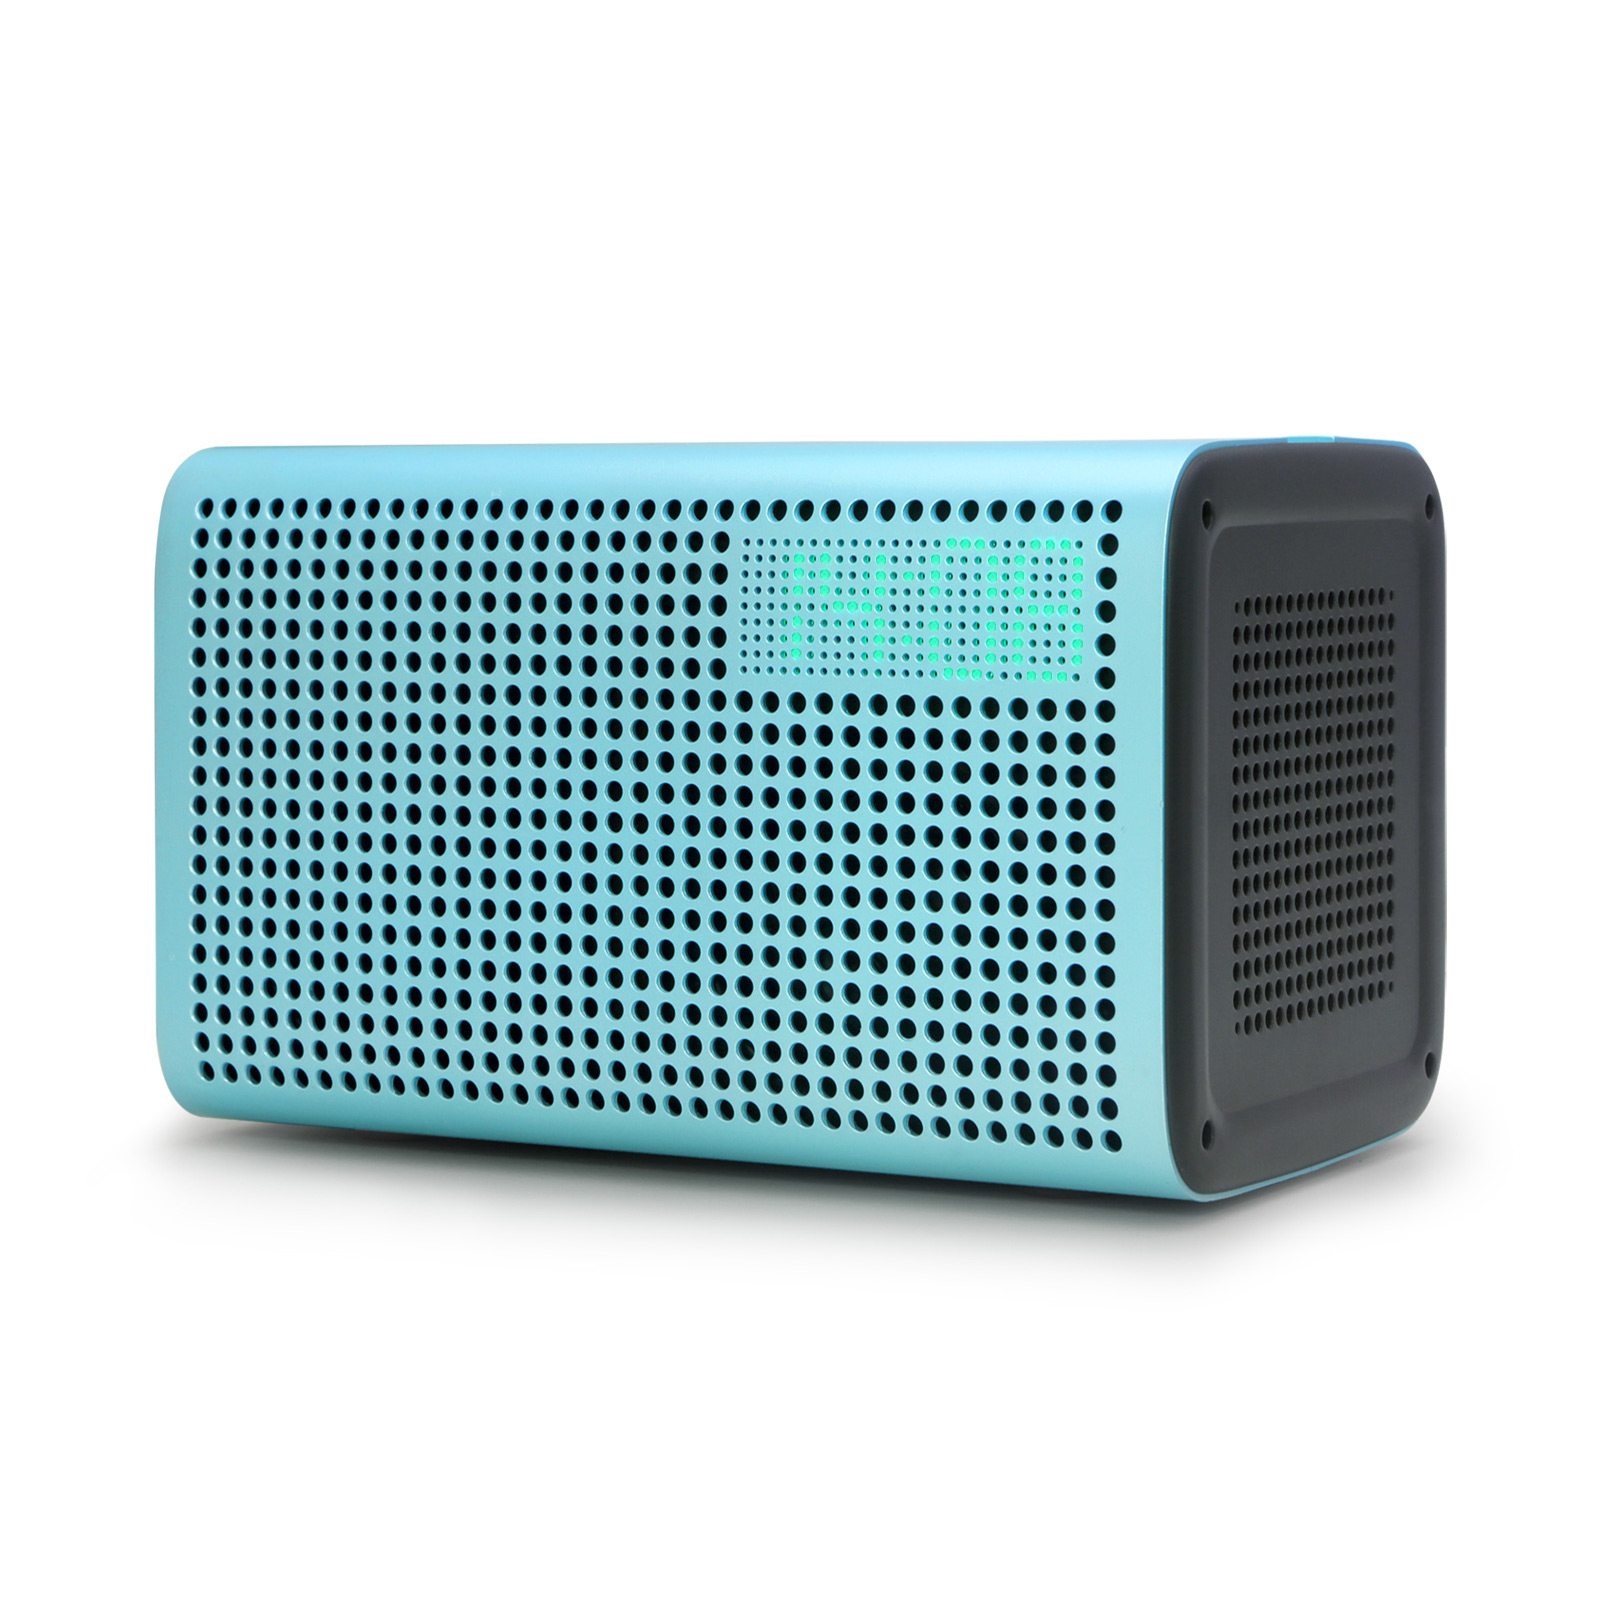 GGMM Wireless WiFi Bluetooth 4.0 Blue